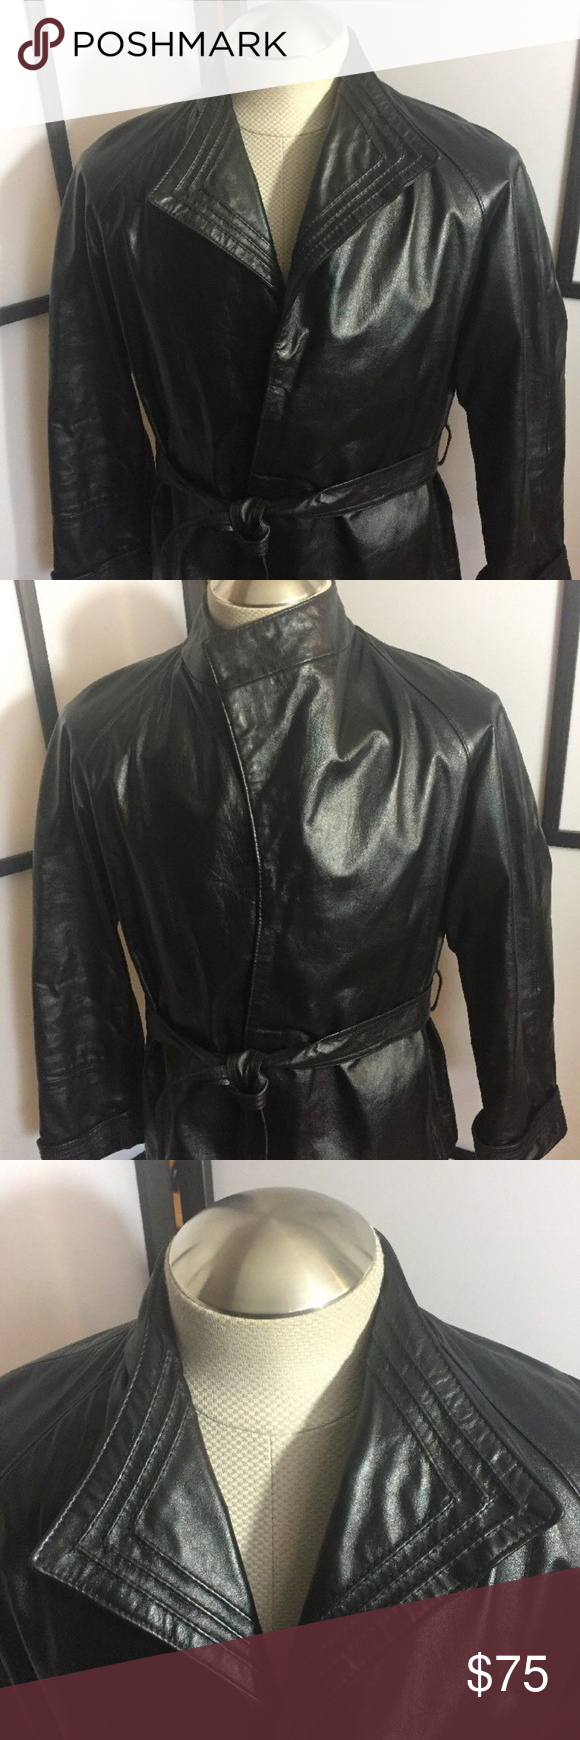 Vintage Comint Leather Black Size 12 With Belt Fashion Clothes Design Urban Outfitters Jacket [ 1740 x 580 Pixel ]